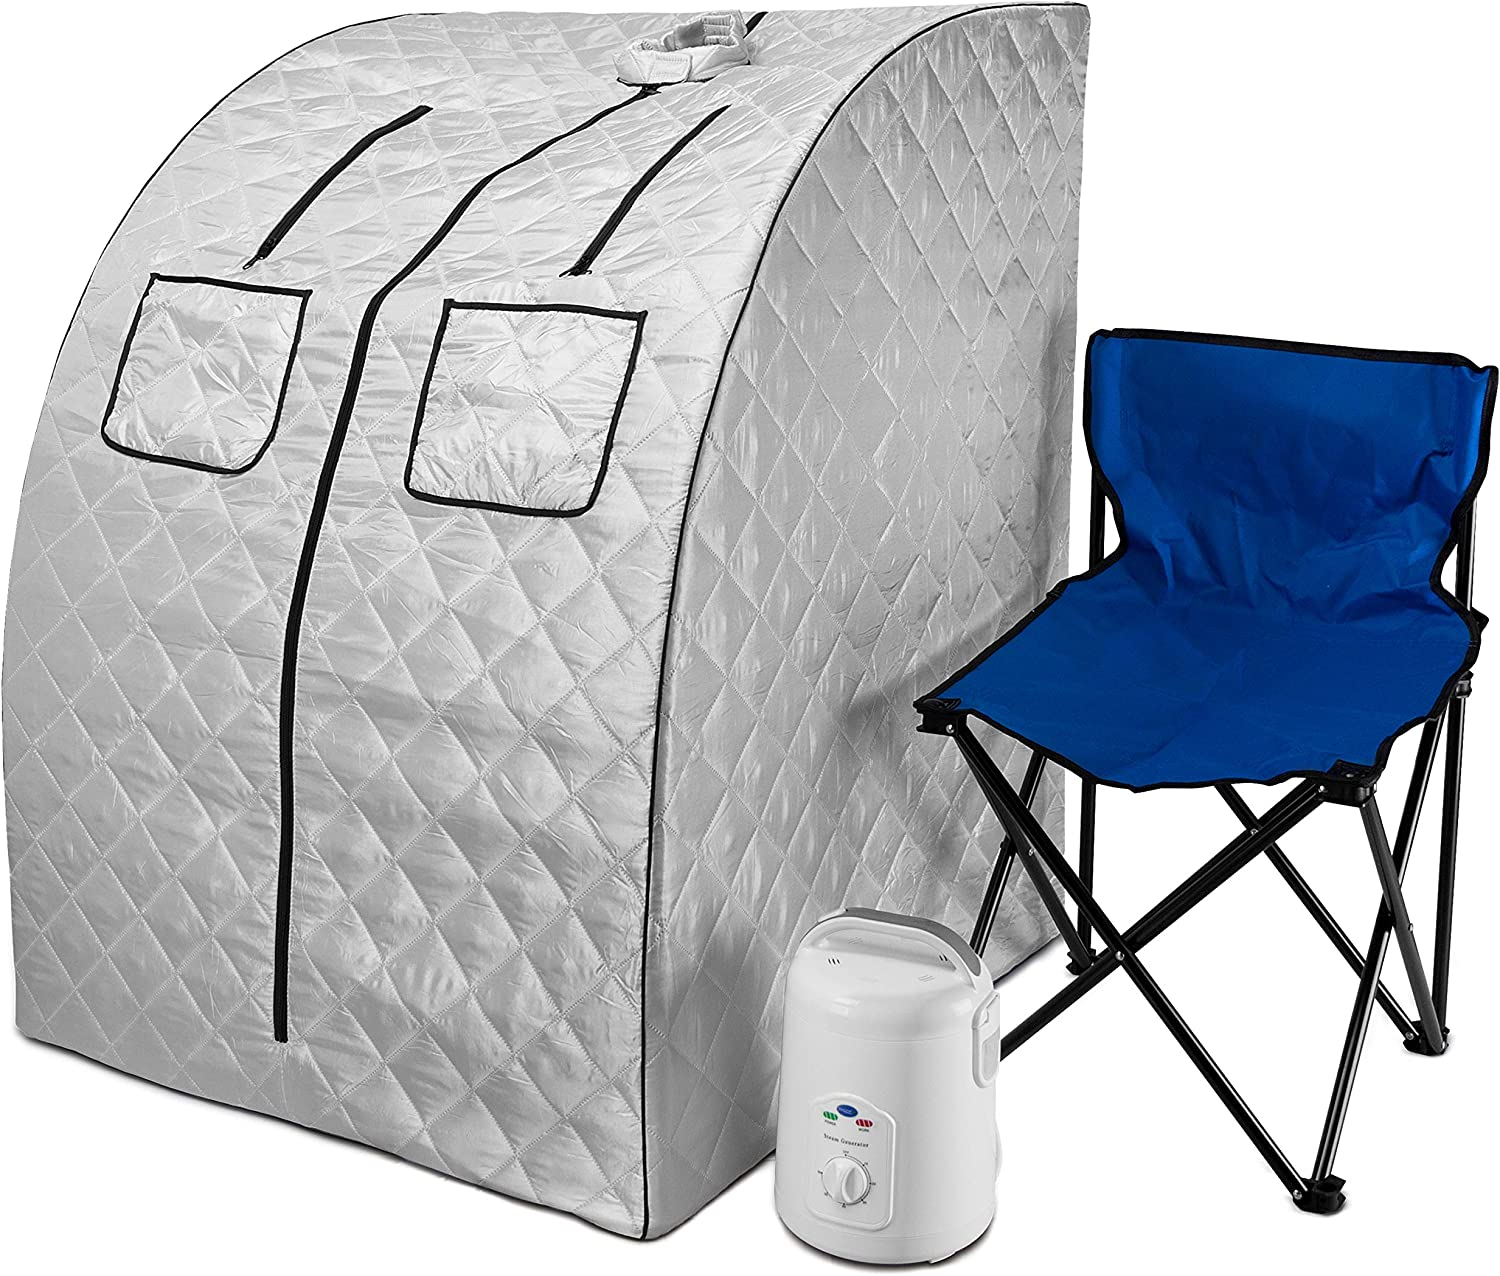 Durasage Oversized Portable Steam Sauna Spa for Weight Loss, Detox, Relaxation at Home, 60 Minute Timer, 800 Watt Steam Generator, Chair Included, 1.5 Year Warranty - Silver